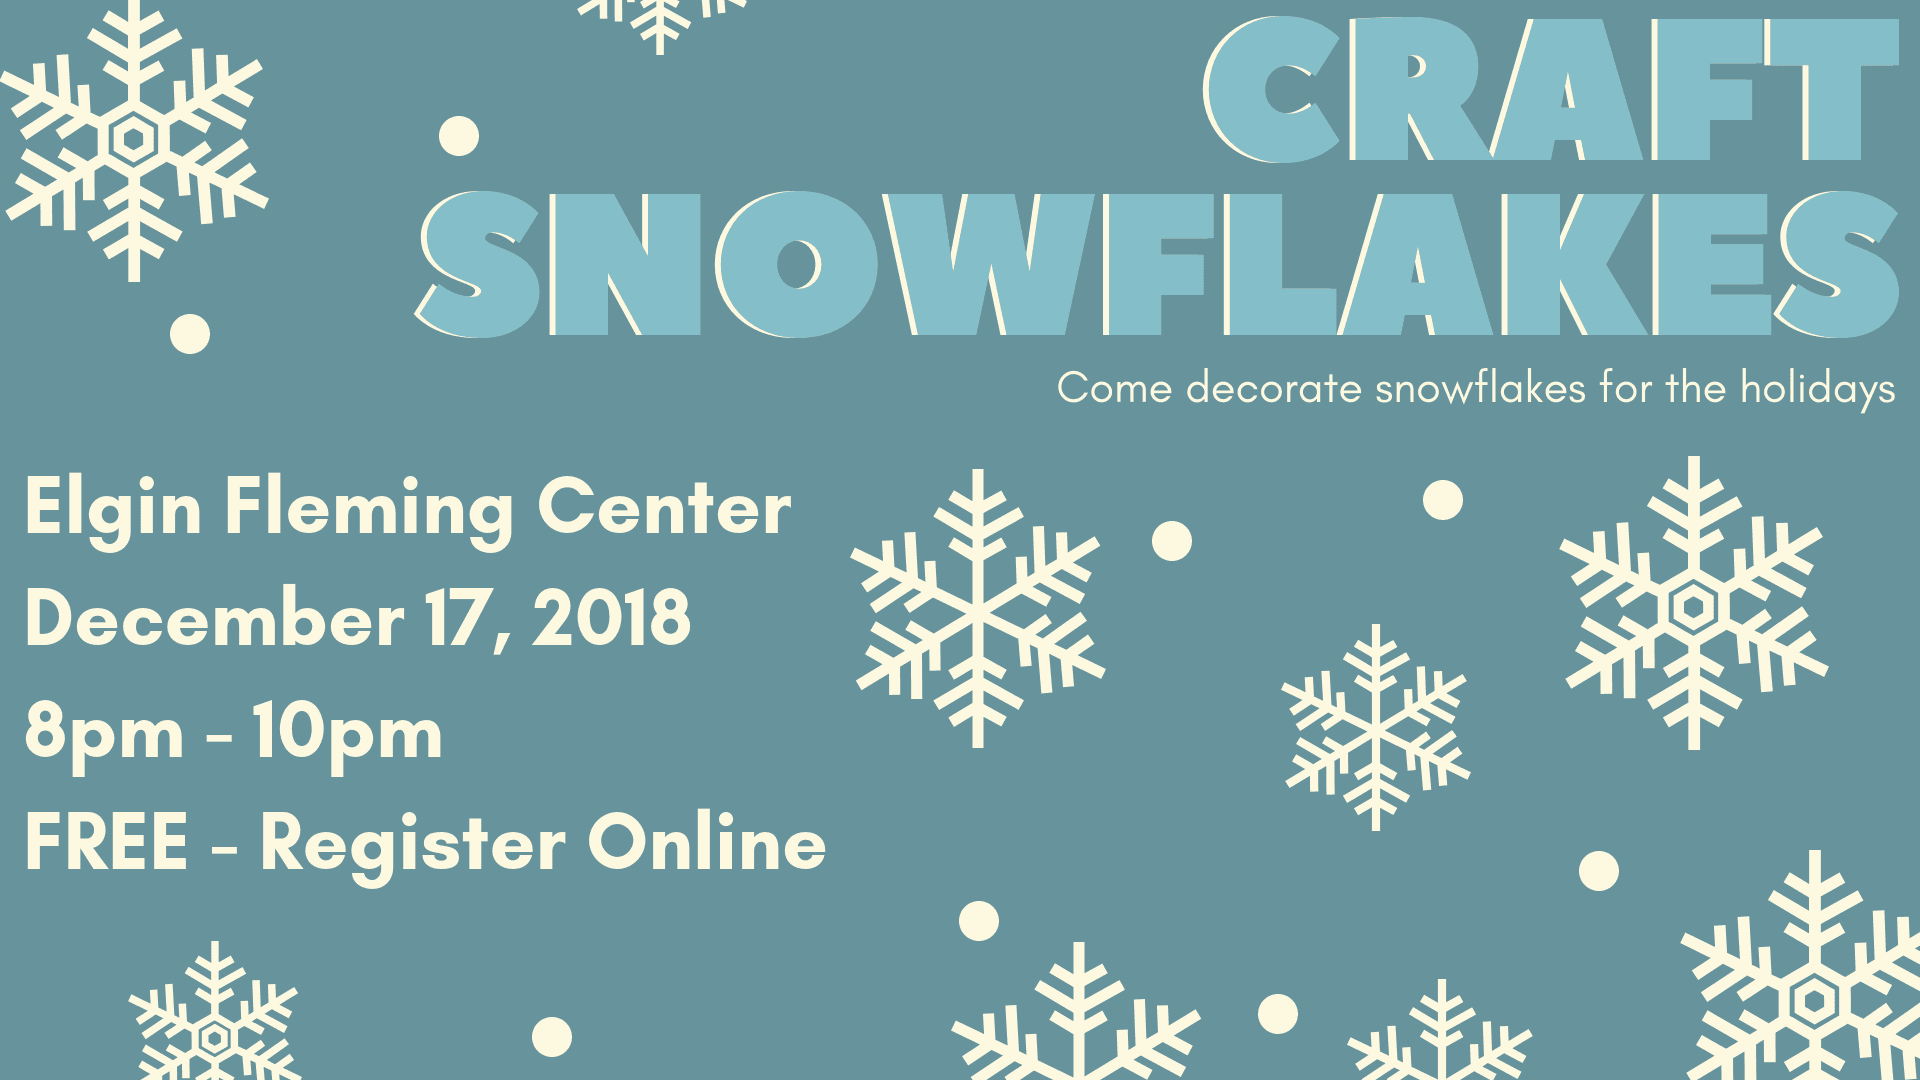 Snowflake crafts 2018